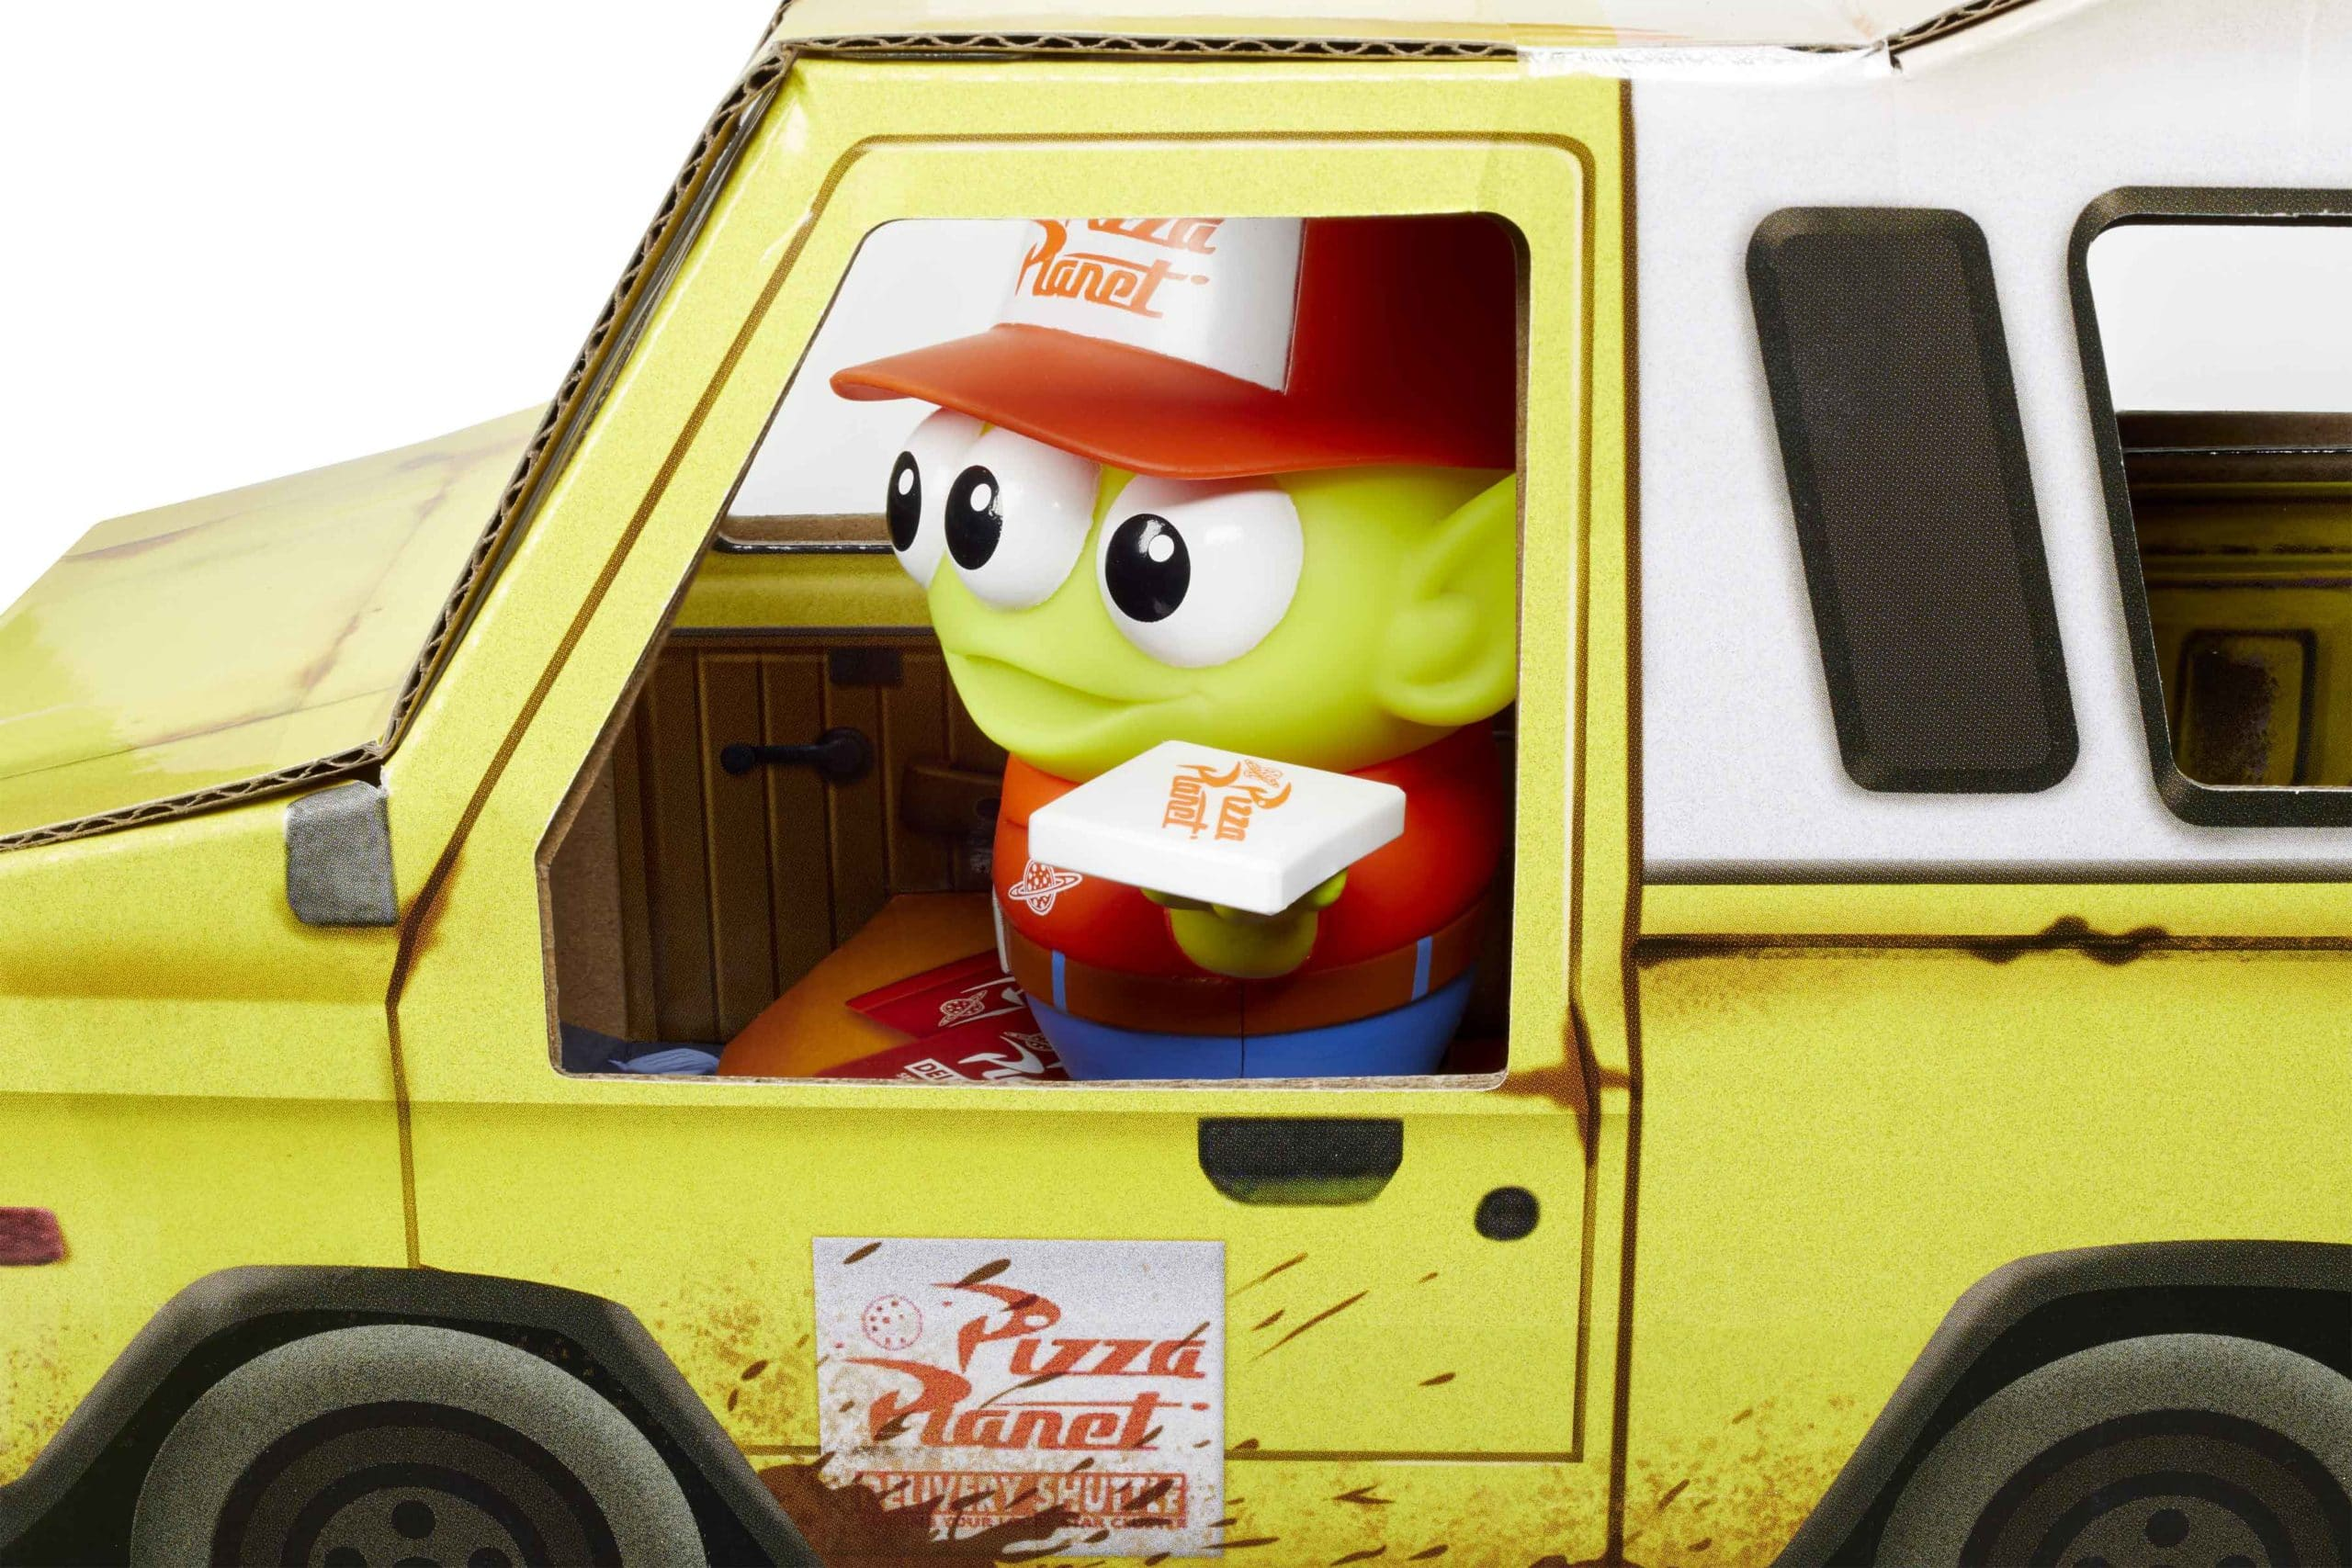 Mattel celebrates Toy Story's 25th anniversary with an Alien Pizza Planet Delivery Guy figure 13